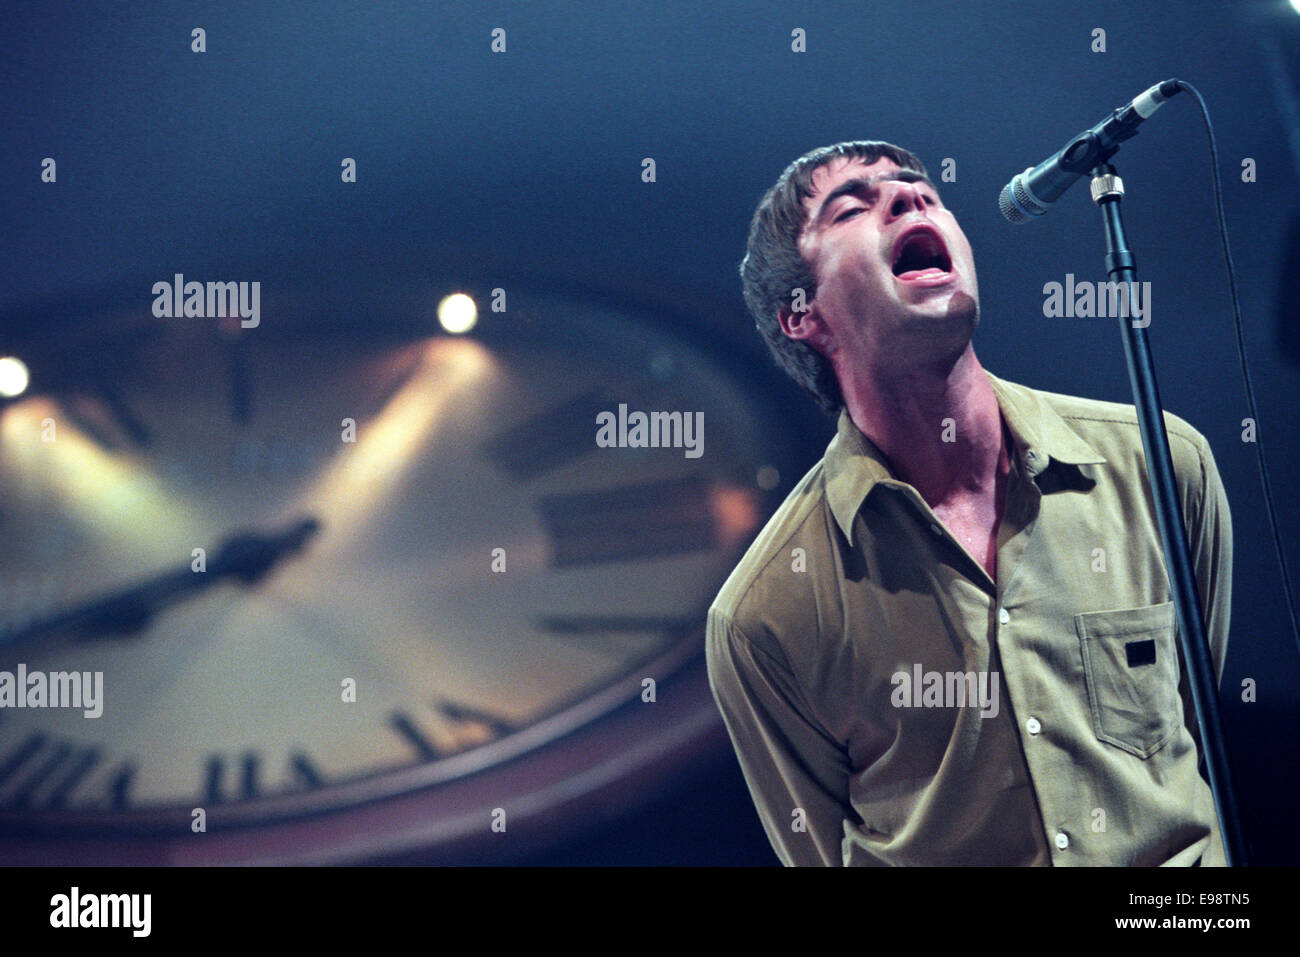 Liam Gallagher and Oasis in Aberdeen, Scotland, 1997. - Stock Image